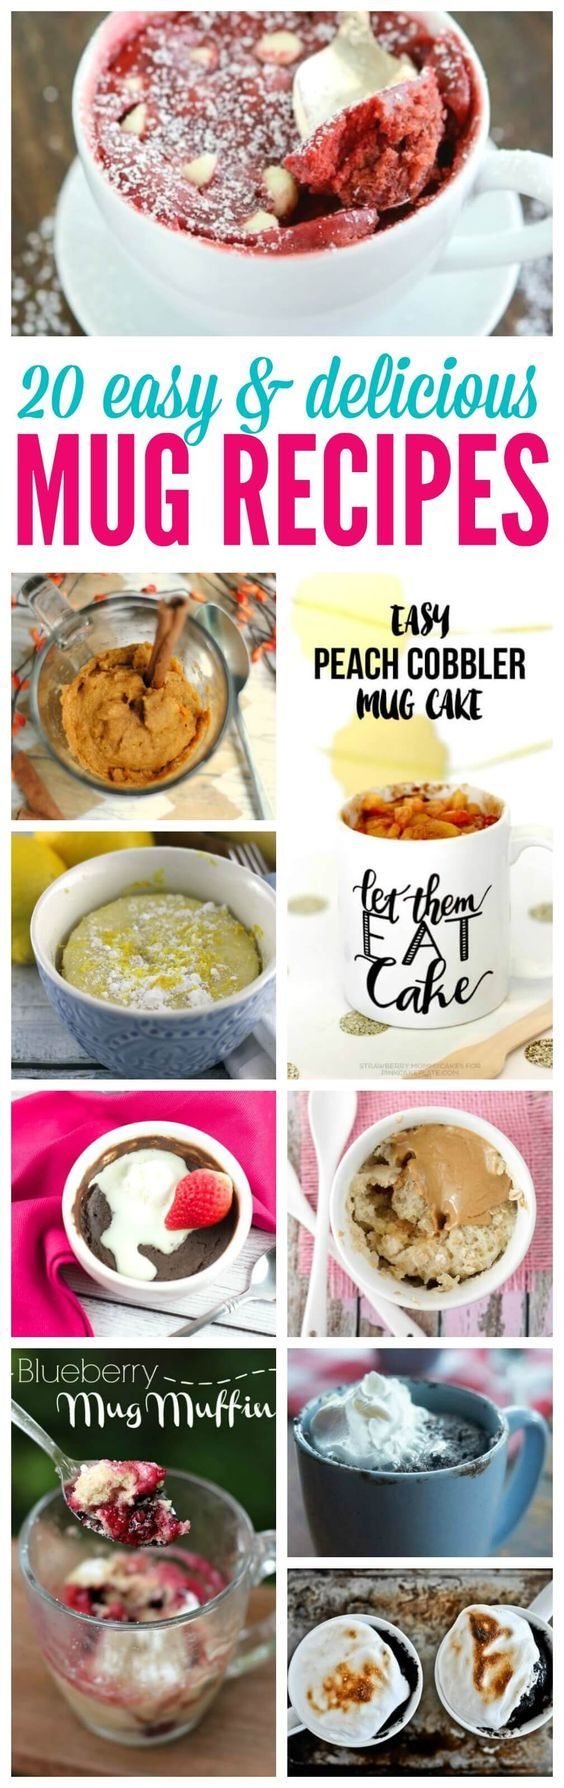 20 Easy & Delicious Mug Recipes